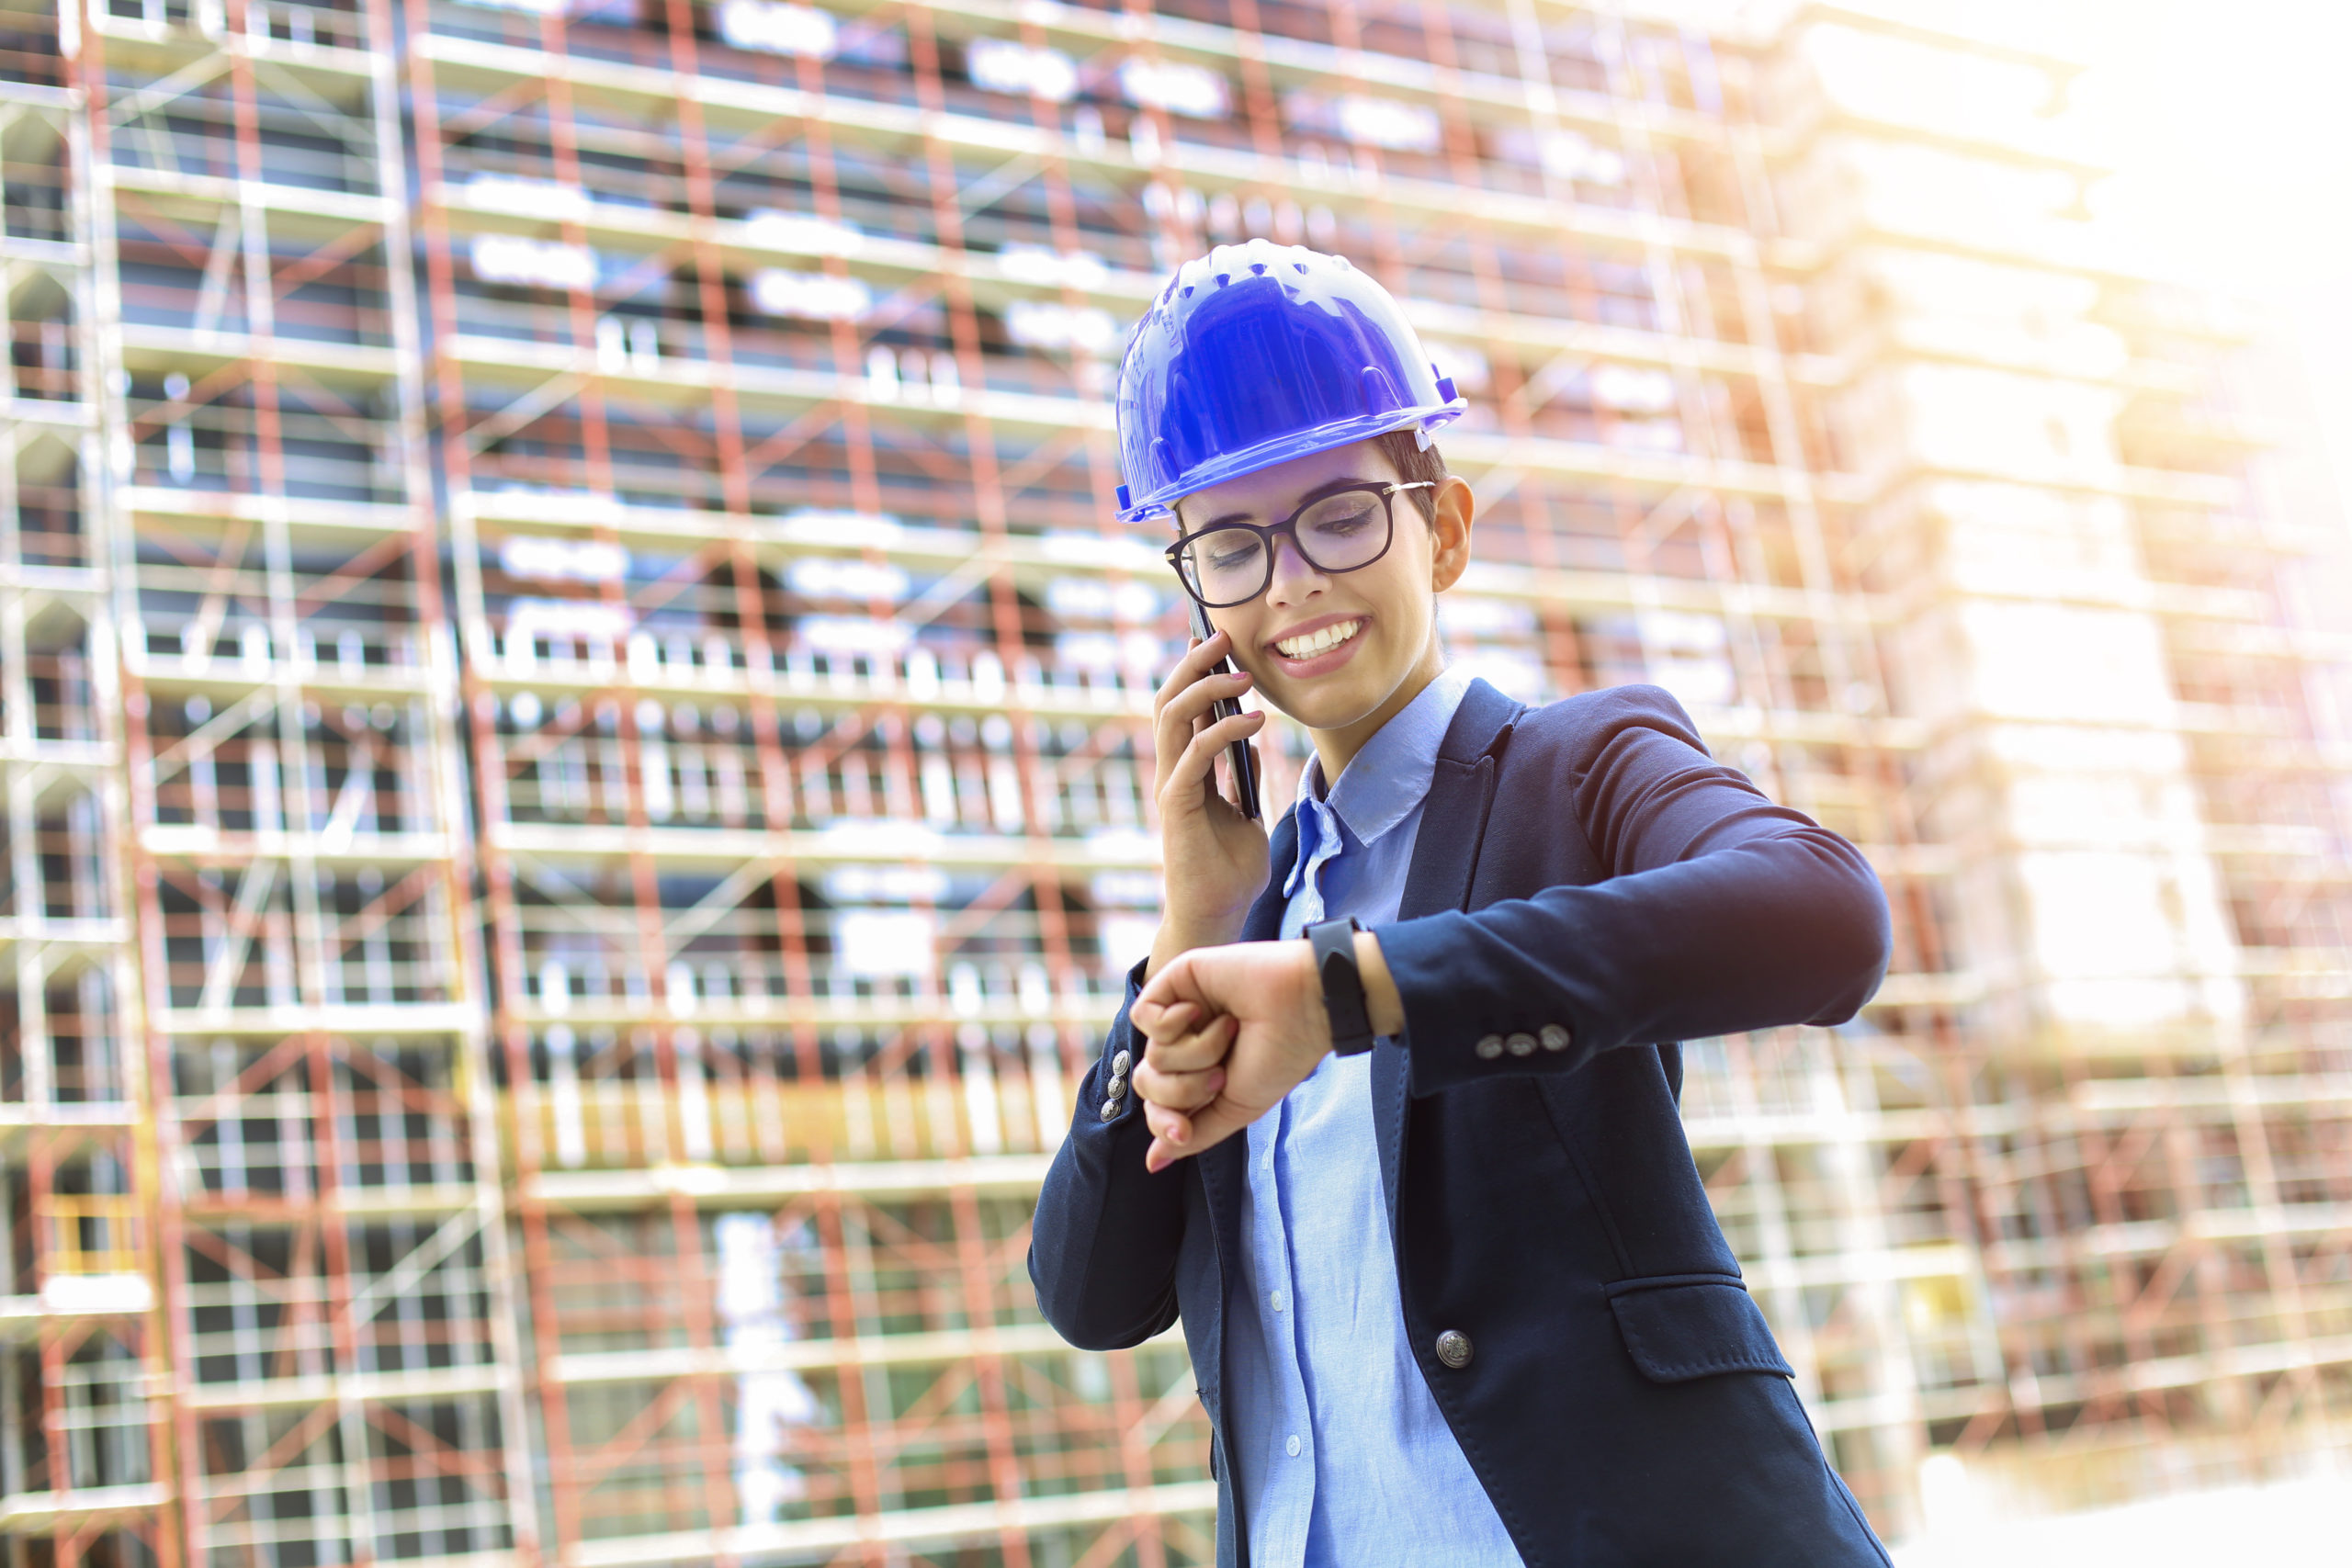 a woman with a construction hat talking on the phone and checking the time on her watch